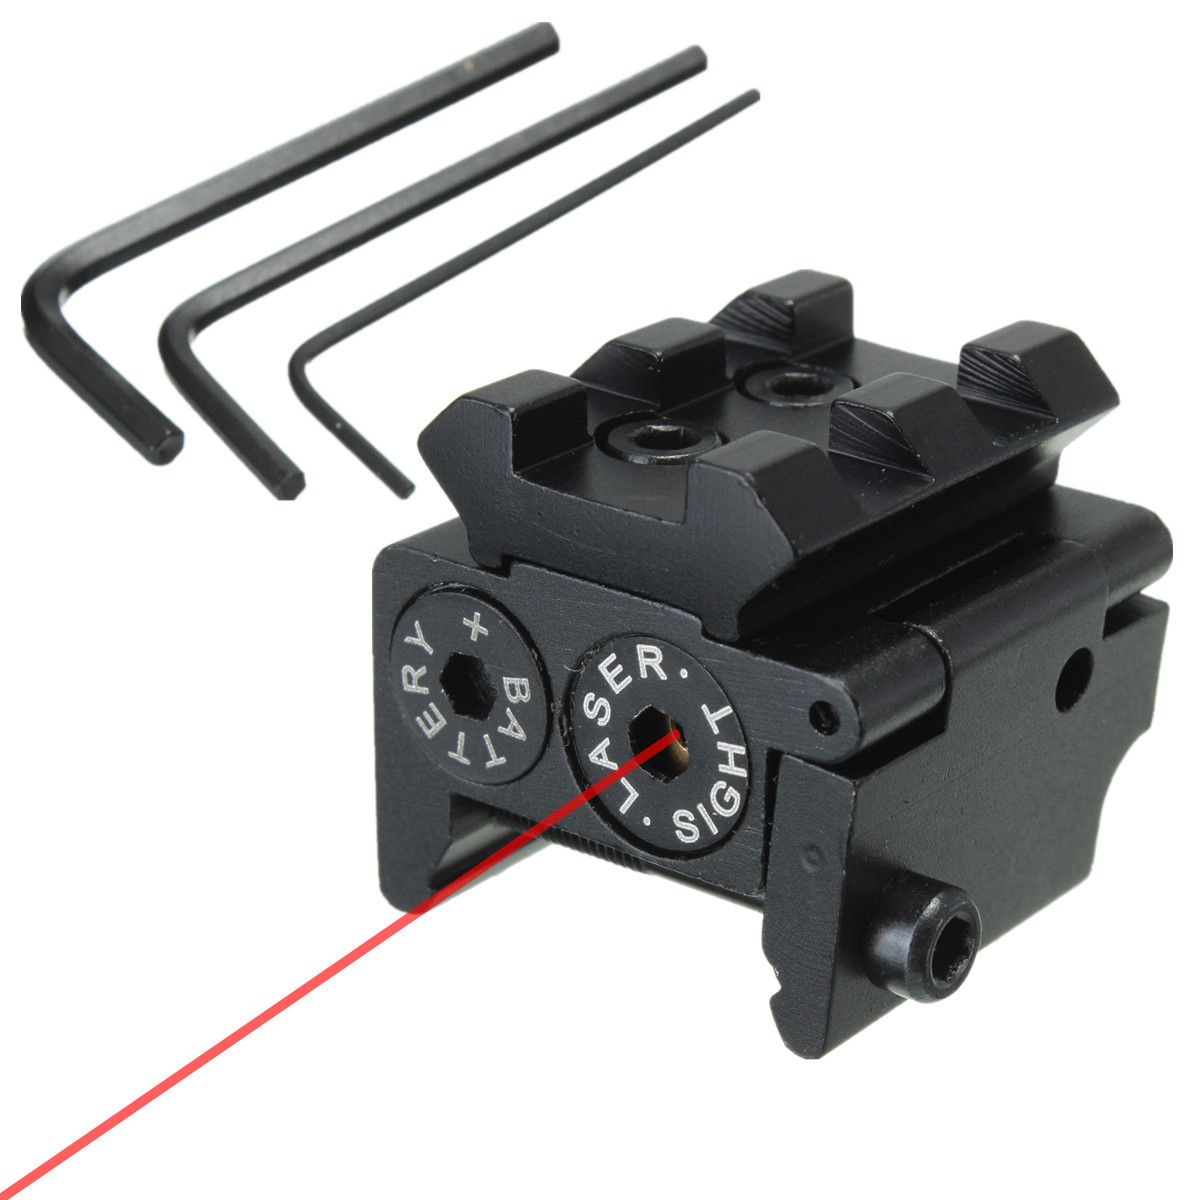 Mini Compact Tactical Red Dot Laser Bore Sight Scope With 20mm Picatinny Rail Mount